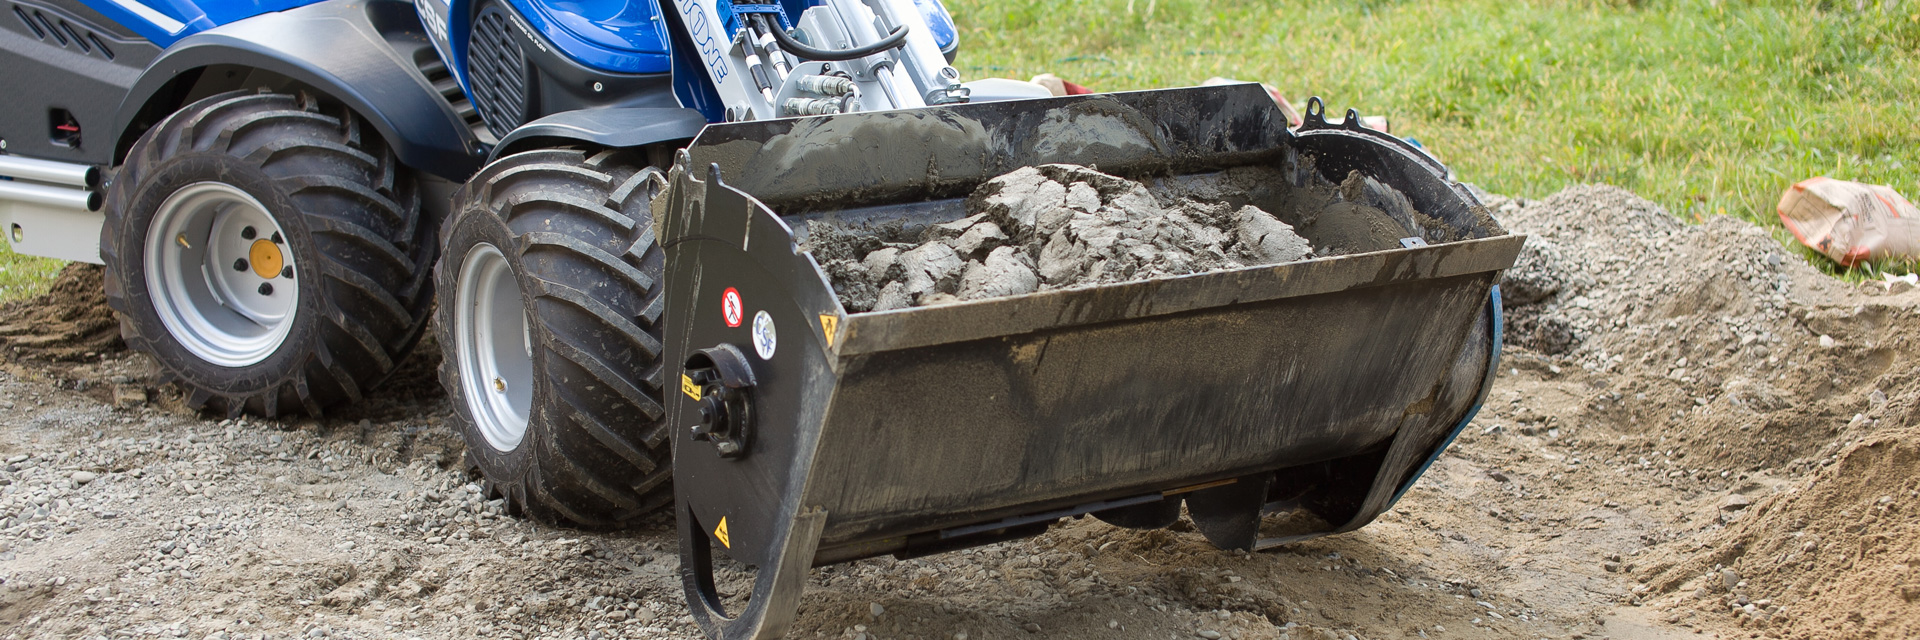 Multione-concrete-mixing-bucket for mini loaders